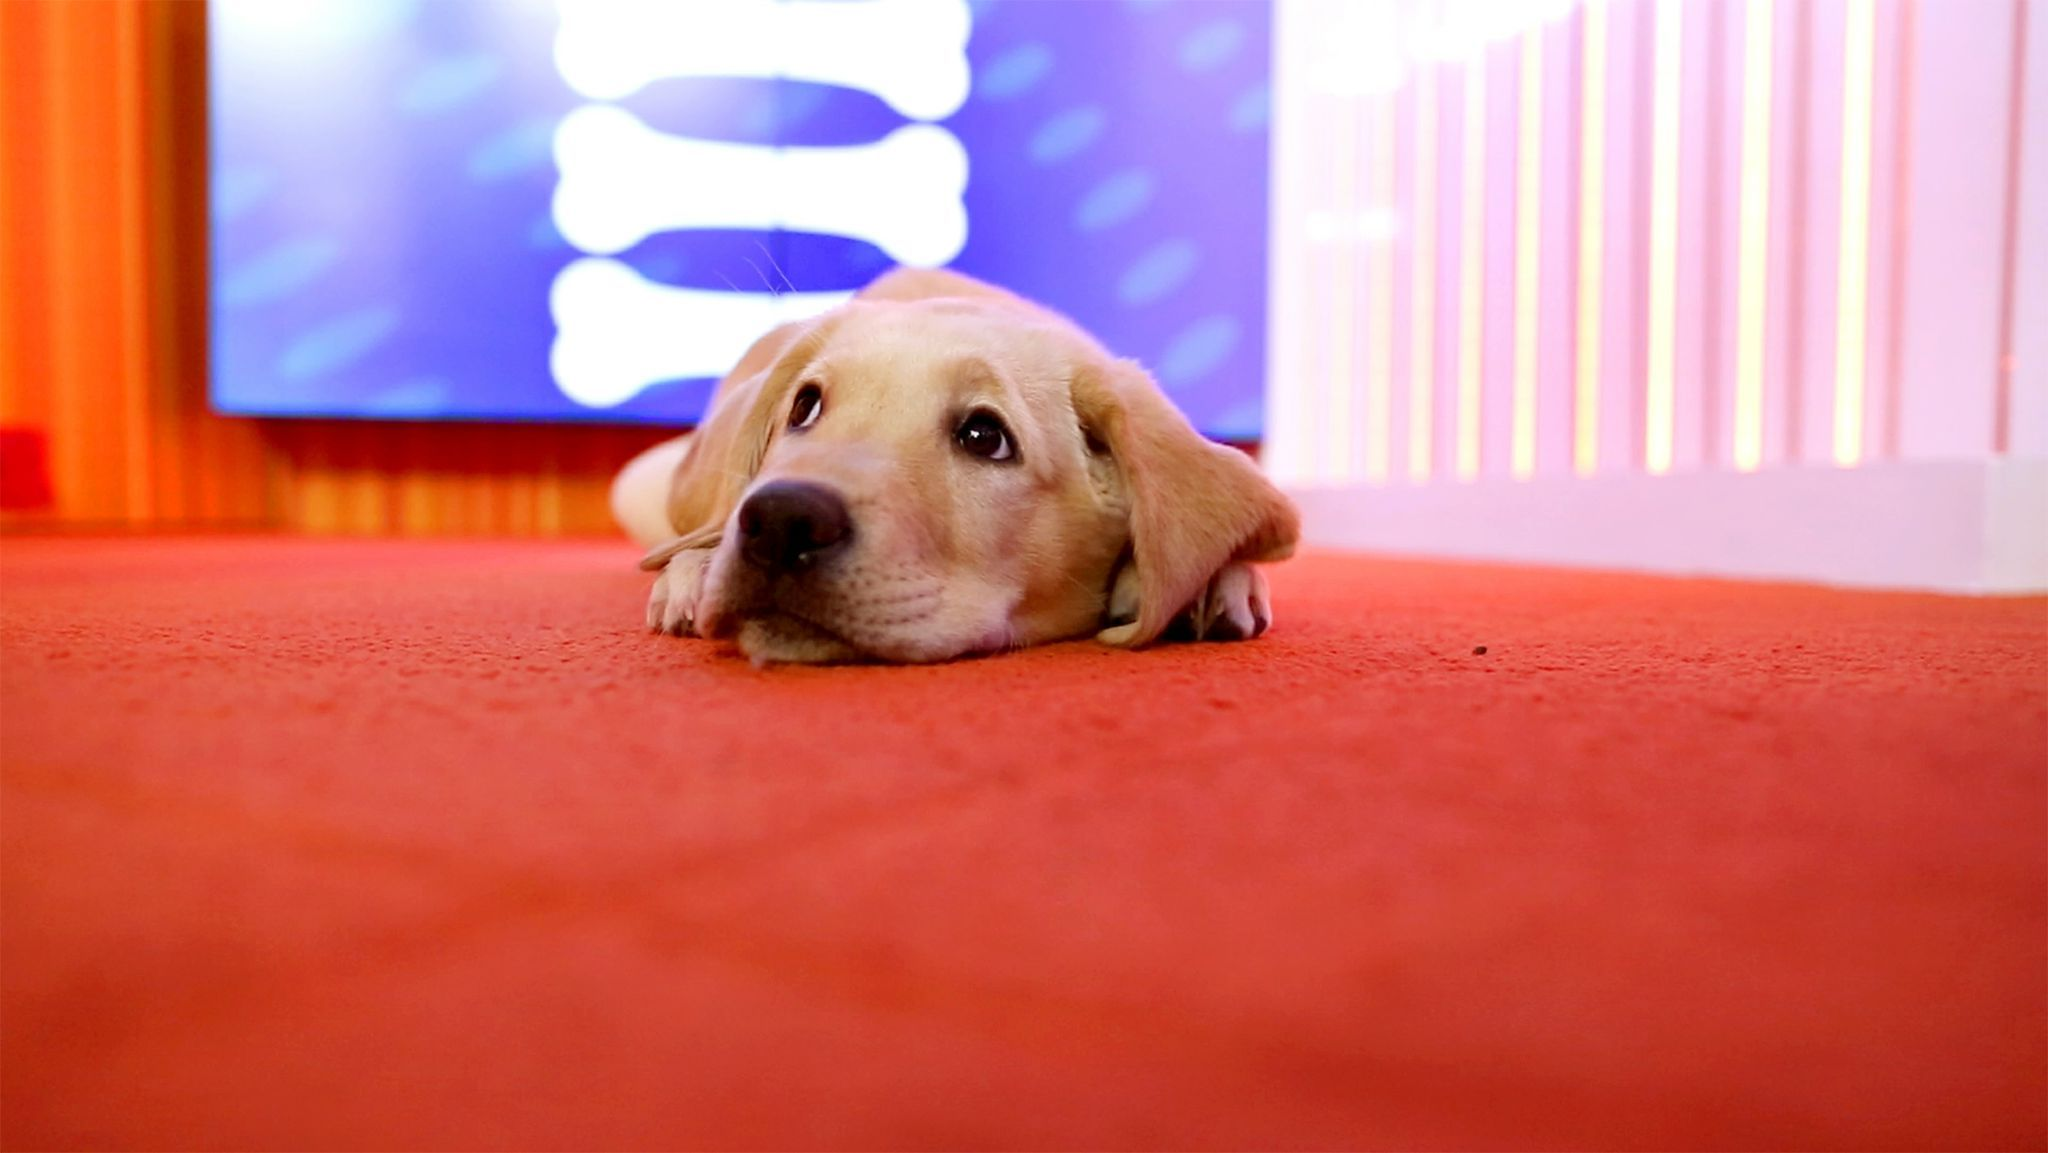 Celebrate Wrangler Wednesday with a puppy live stream